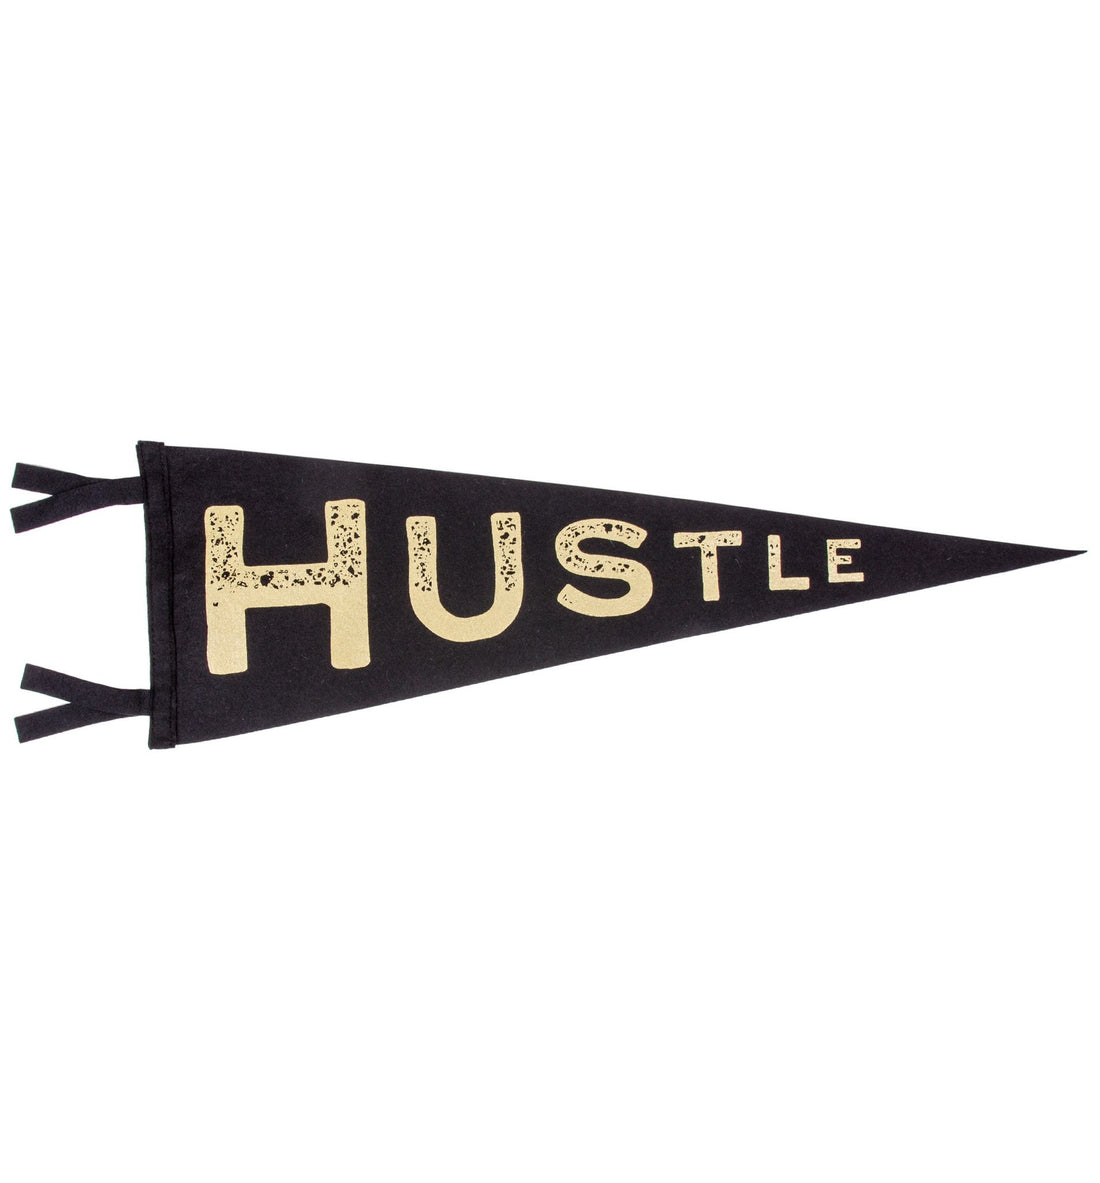 Oxford Pennant - Hustle - Living Space - Iron and Resin